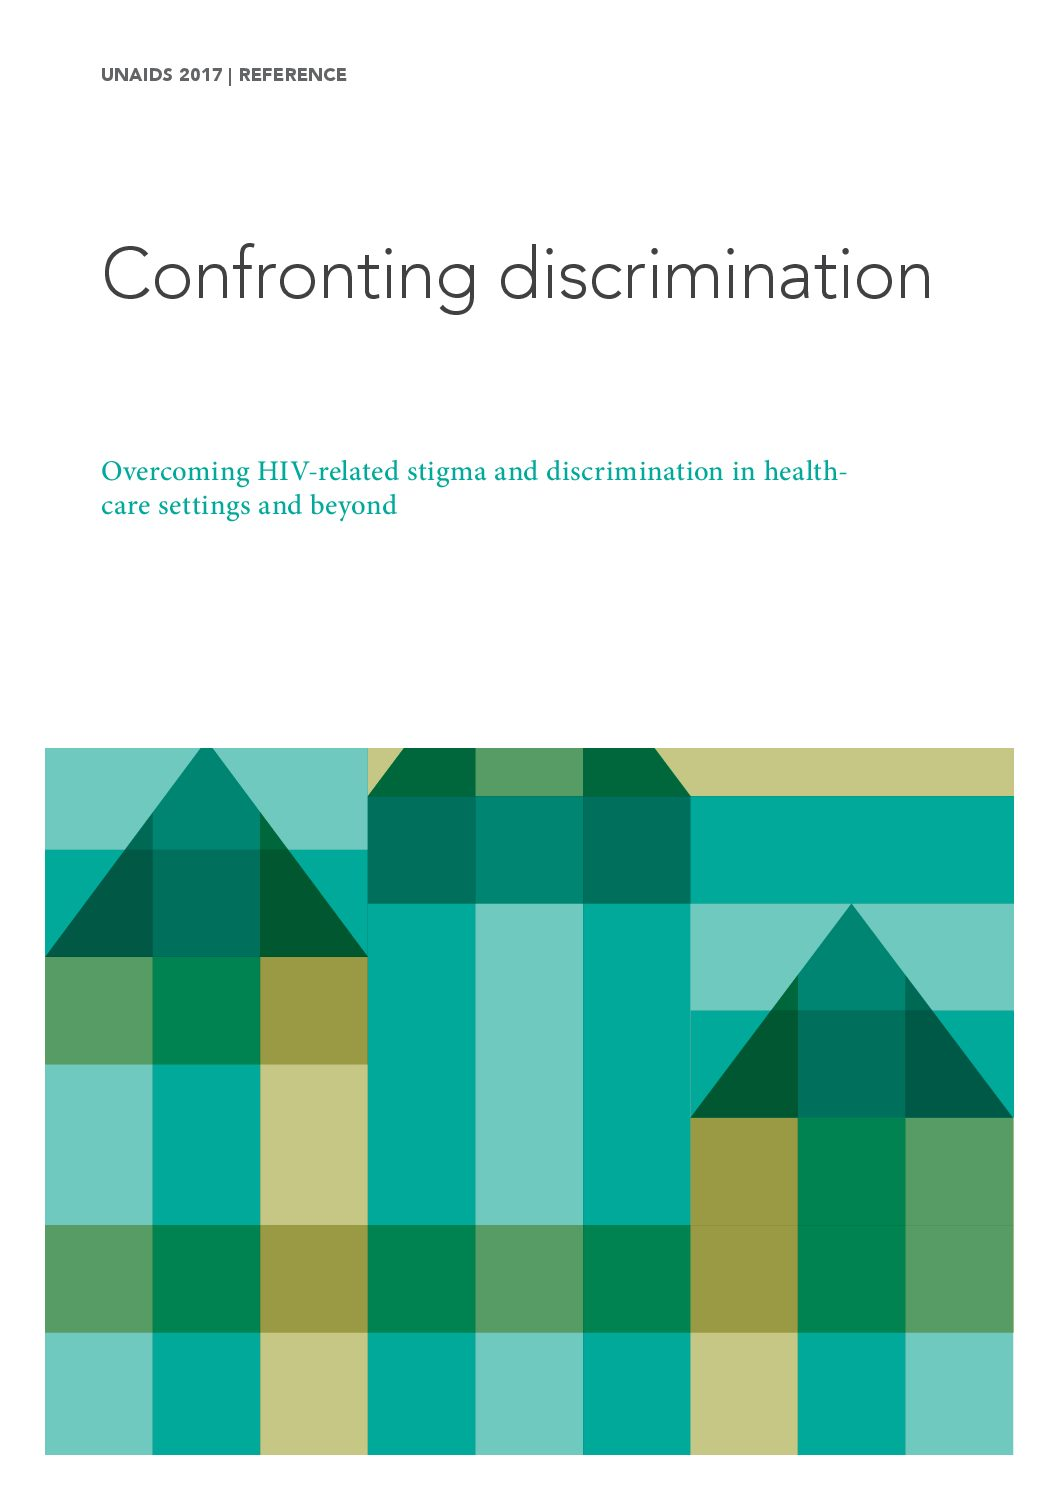 Confronting discrimination: overcoming HIV-related stigma and discrimination in health-care settings and beyond